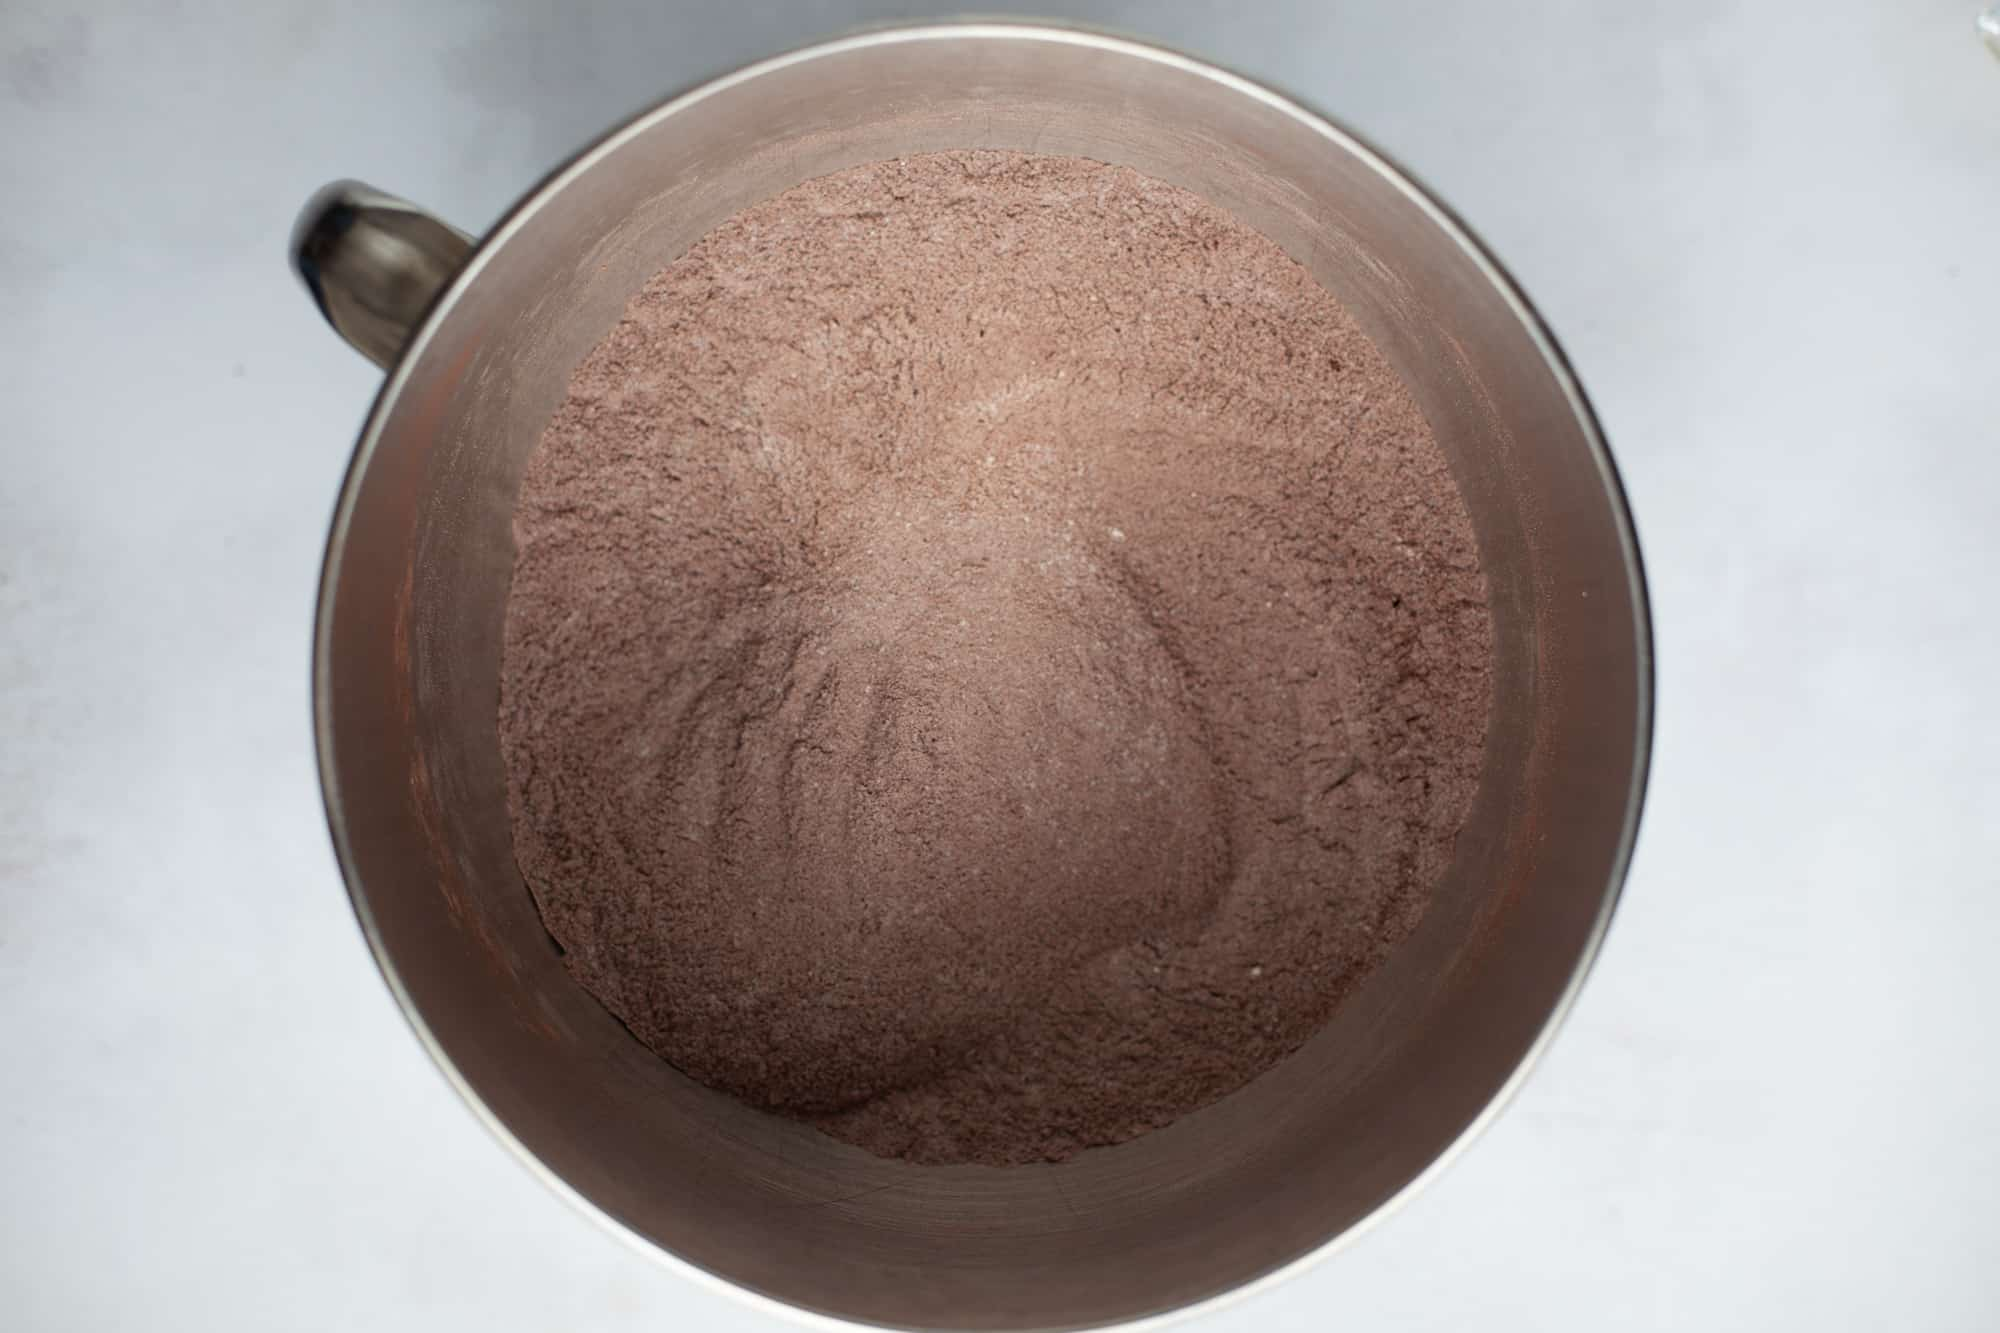 A large silver mixing bowl with a dry cocoa powder and flour mixture